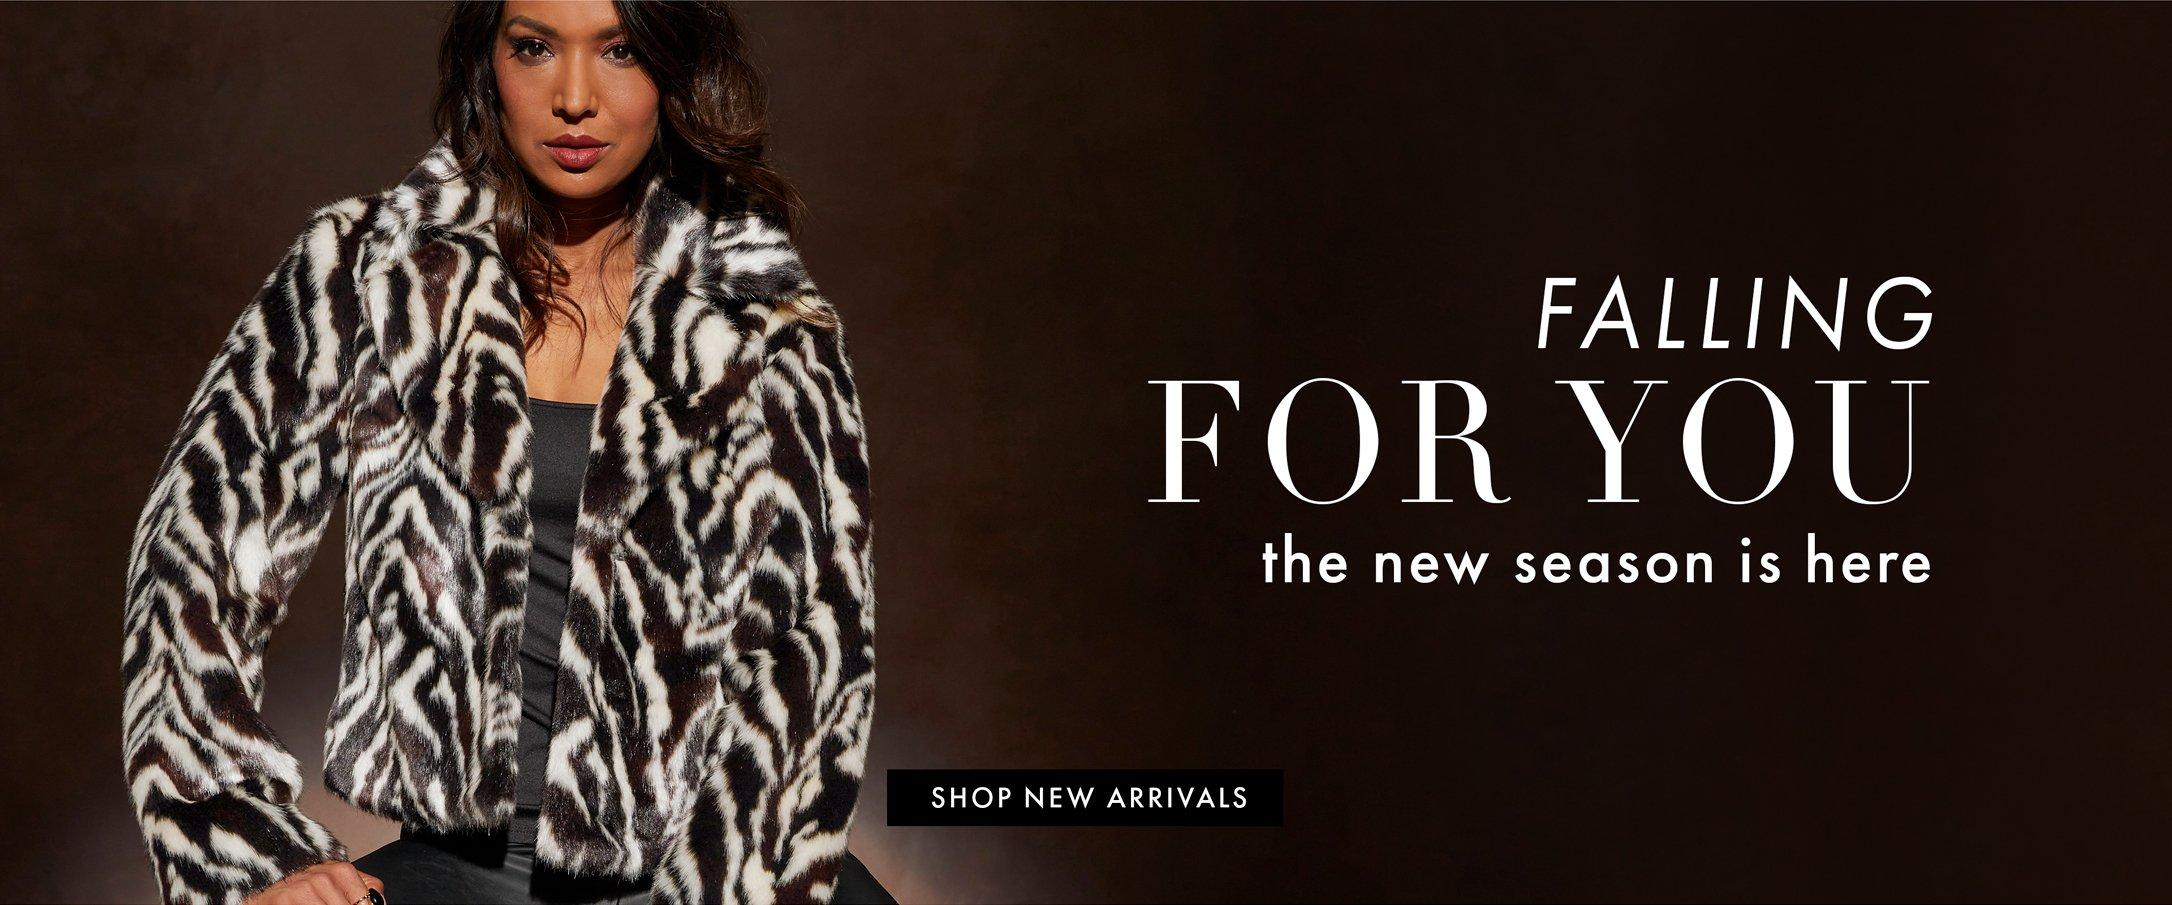 model wearing a white and brown zebra striped faux-fur jacket, black tank tops, and black pants. right text: falling for you. the new season is here. shop new arrivals.